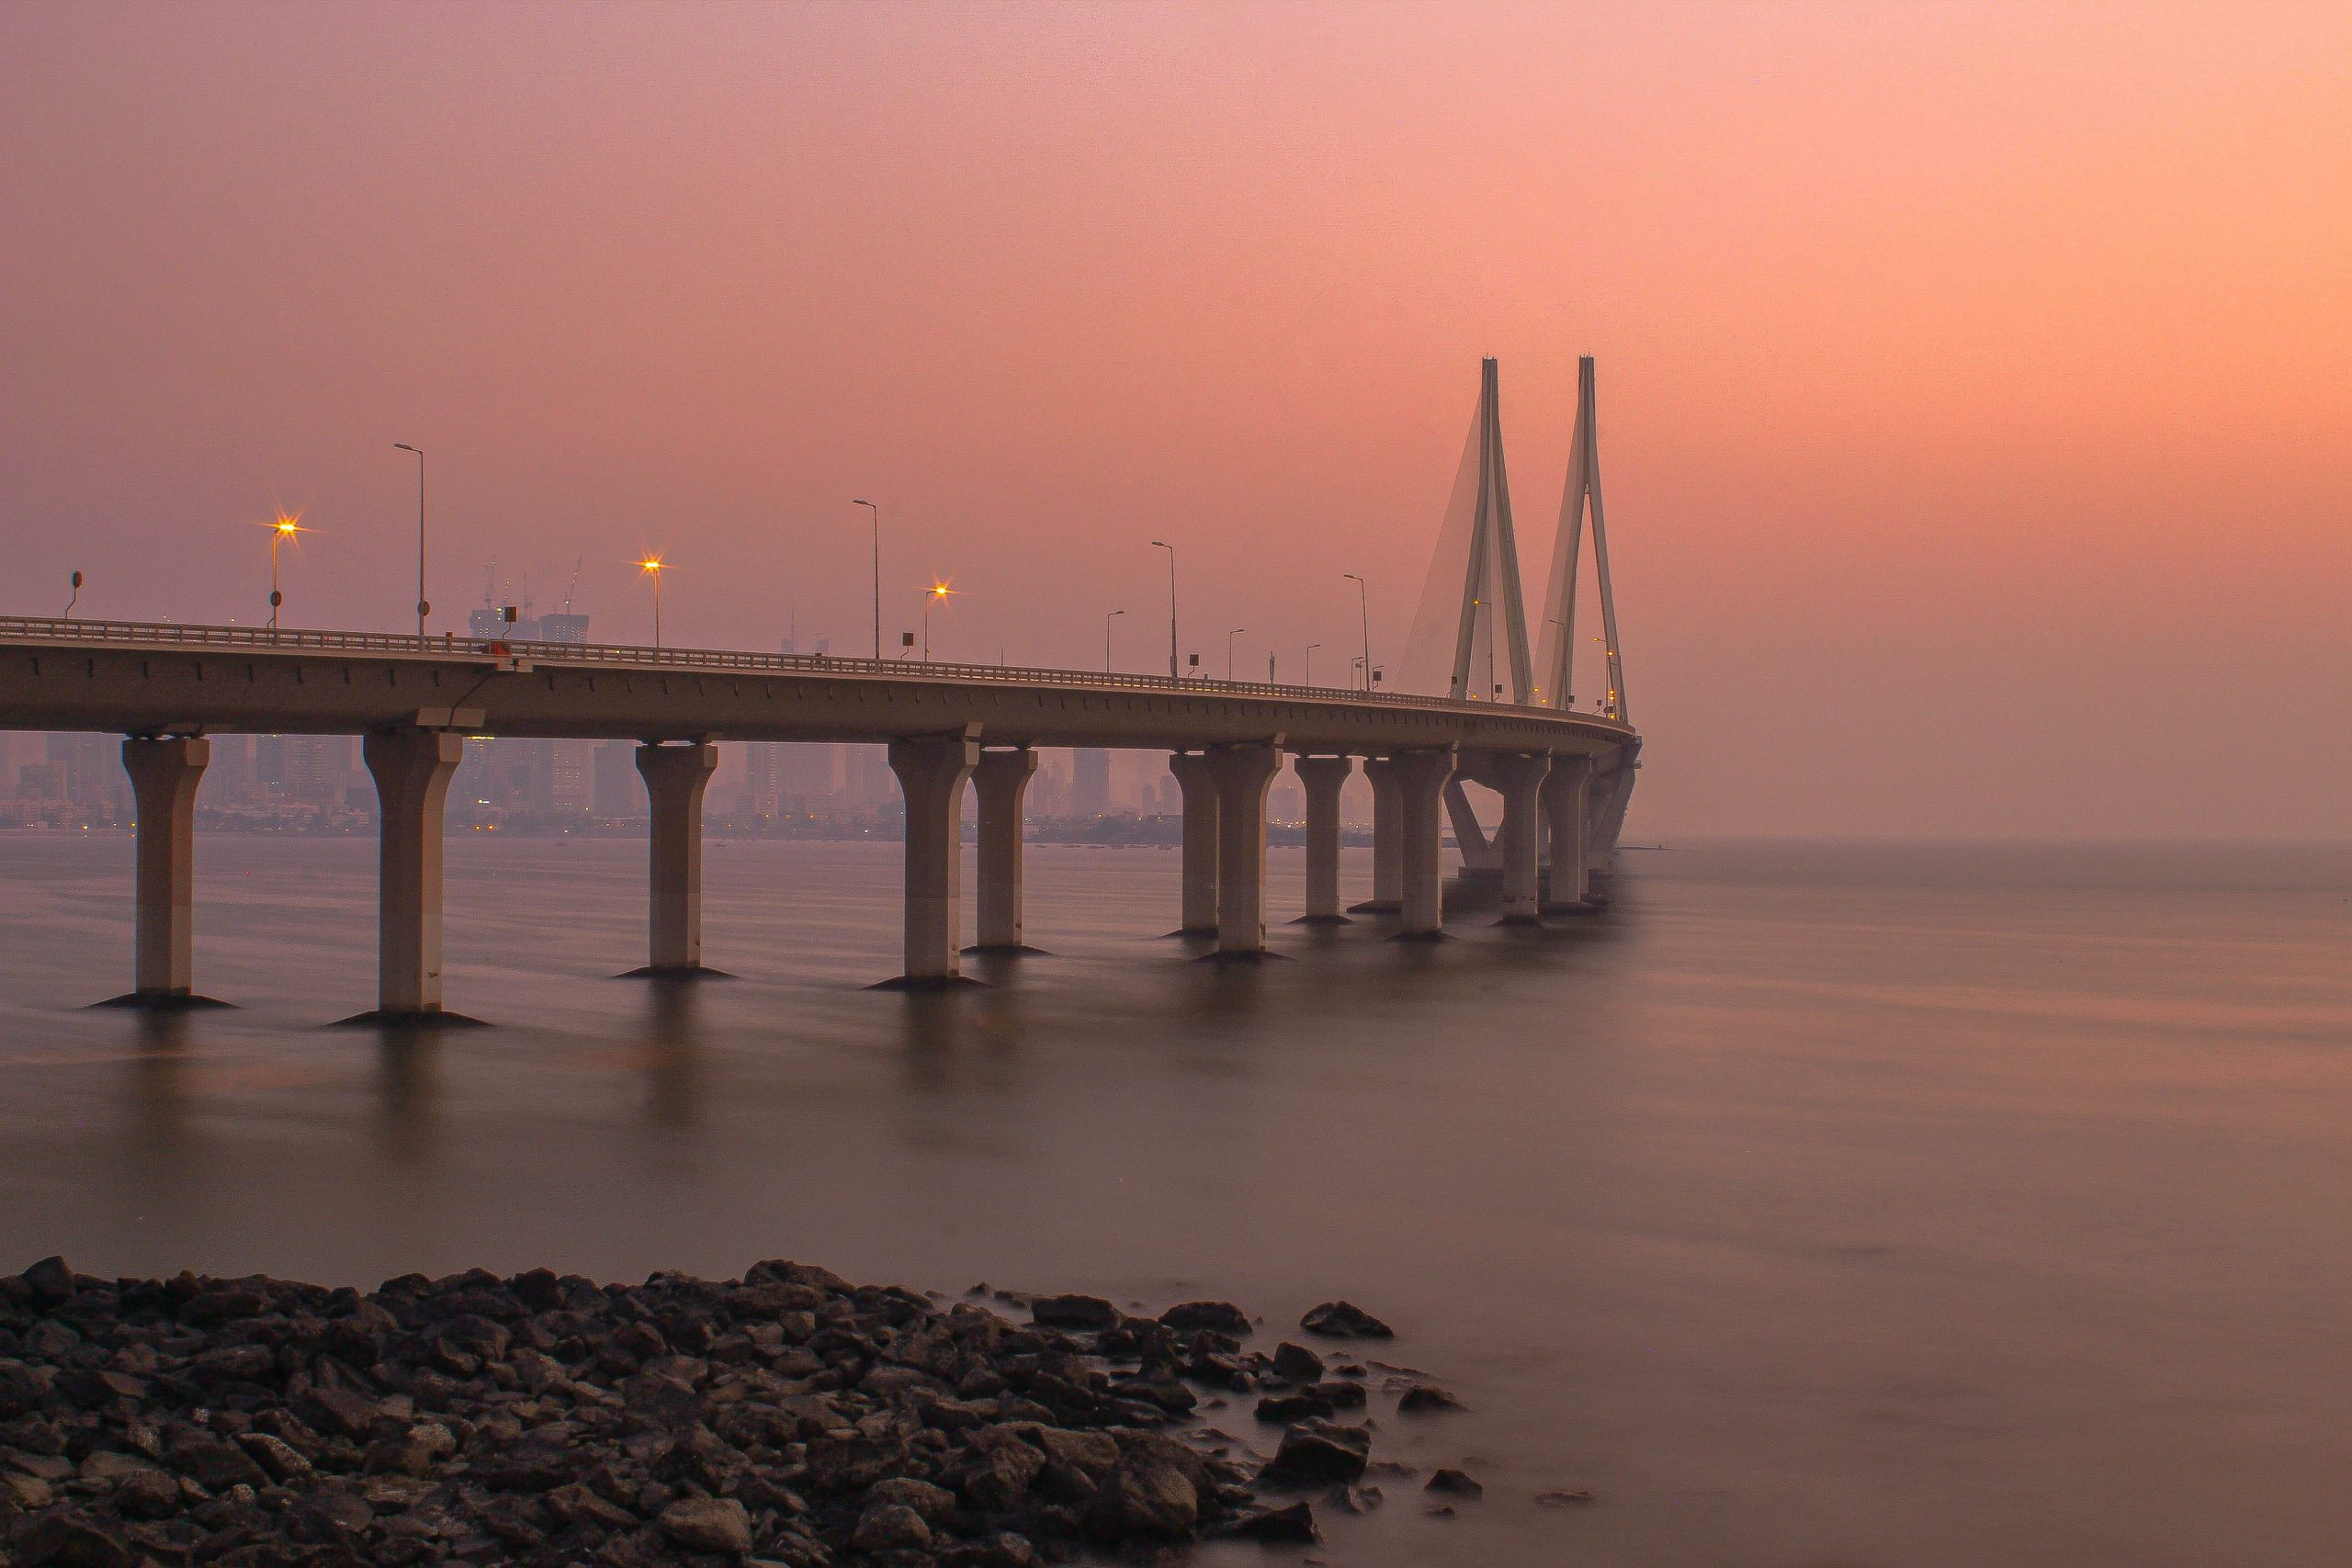 Hazy Sunset in Mumbai!